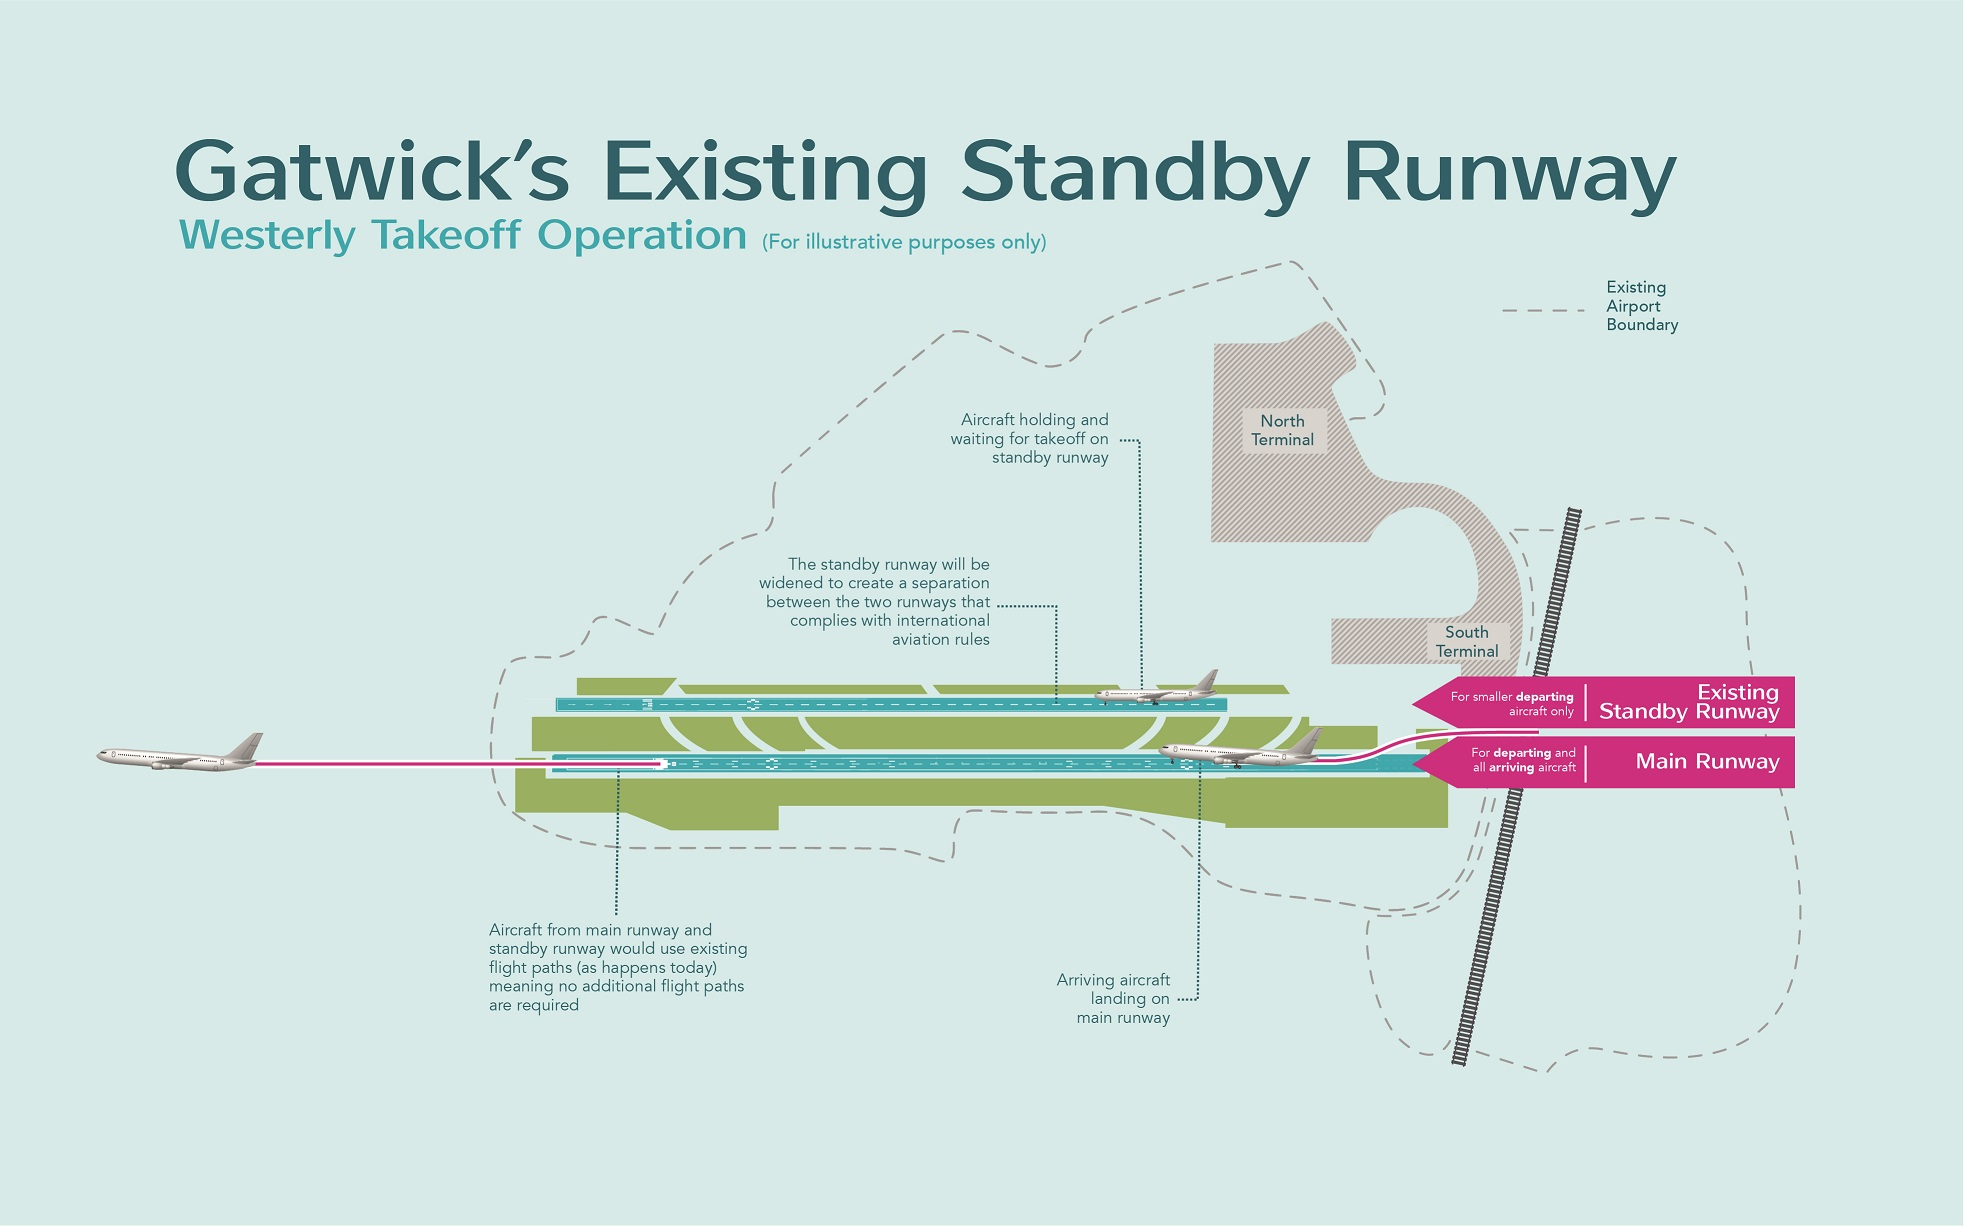 Gatwicks Existing Standby Runway graphic